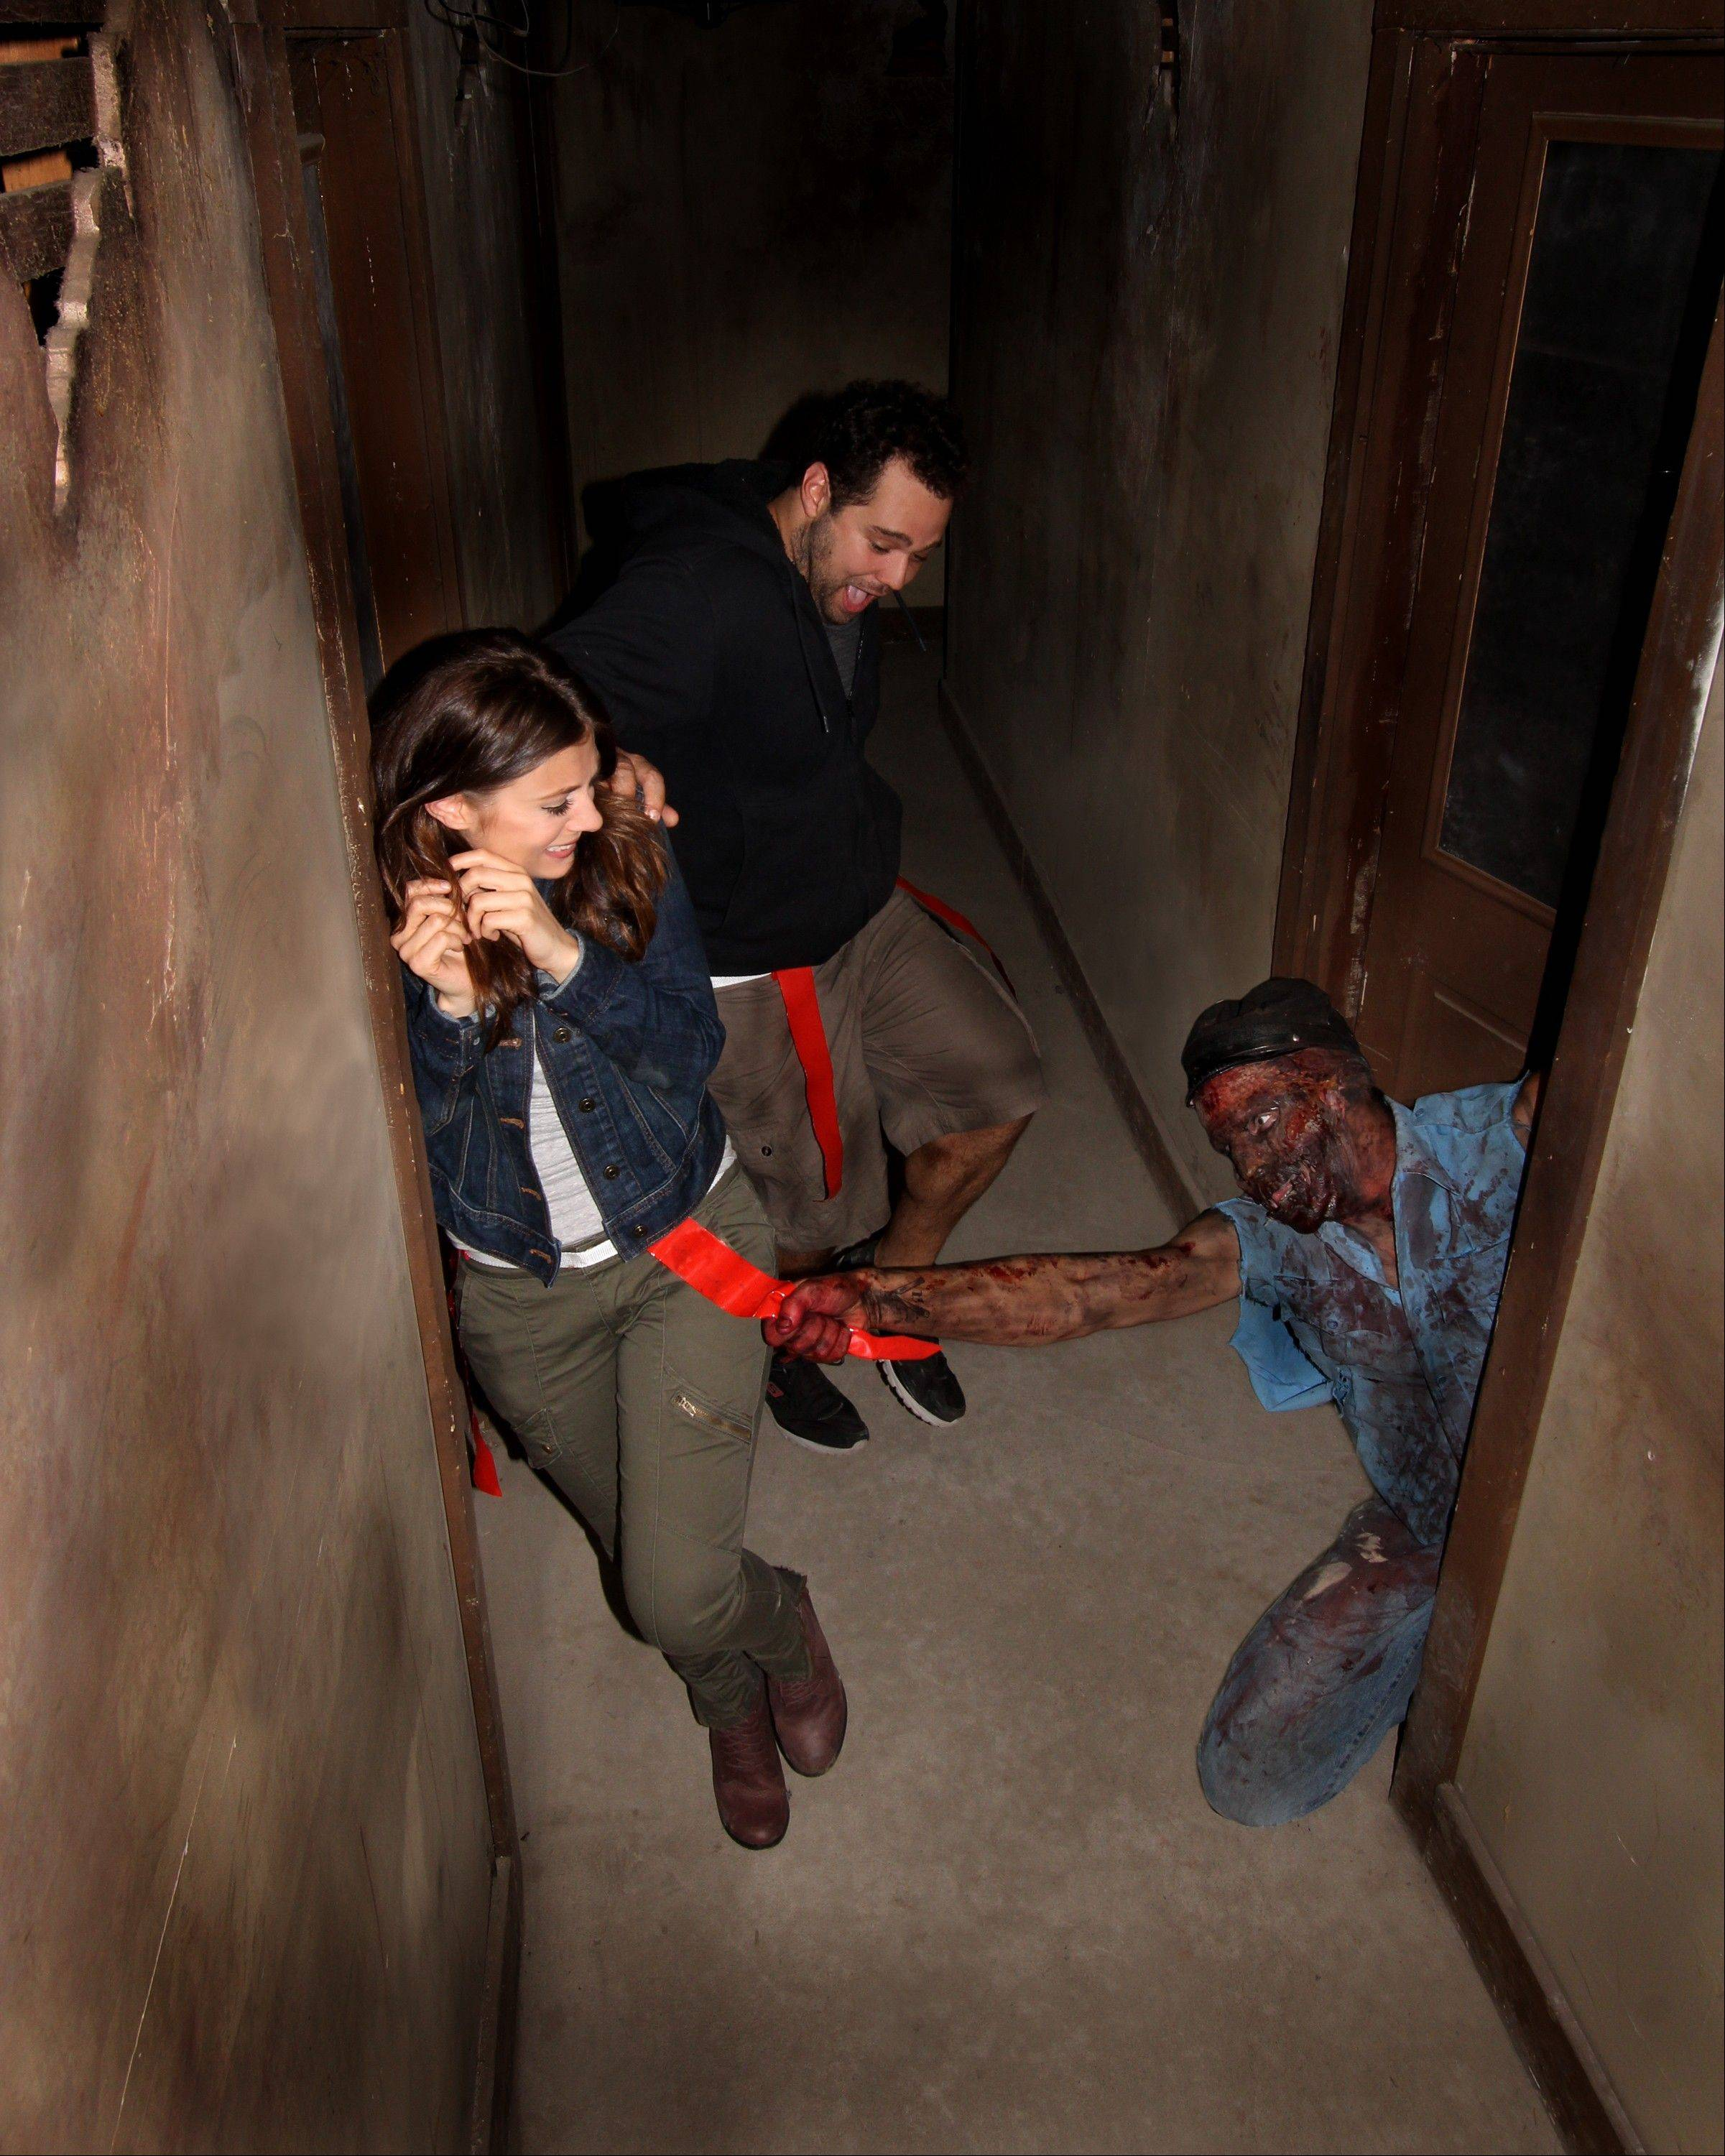 ASSOCIATED PRESS/SHOCKTOBERFEST An actor portraying a zombie grabs a flag from the belt of someone walking through the Prison of the Dead Escape, part of the Shocktoberfest attraction in Reading, Pa.